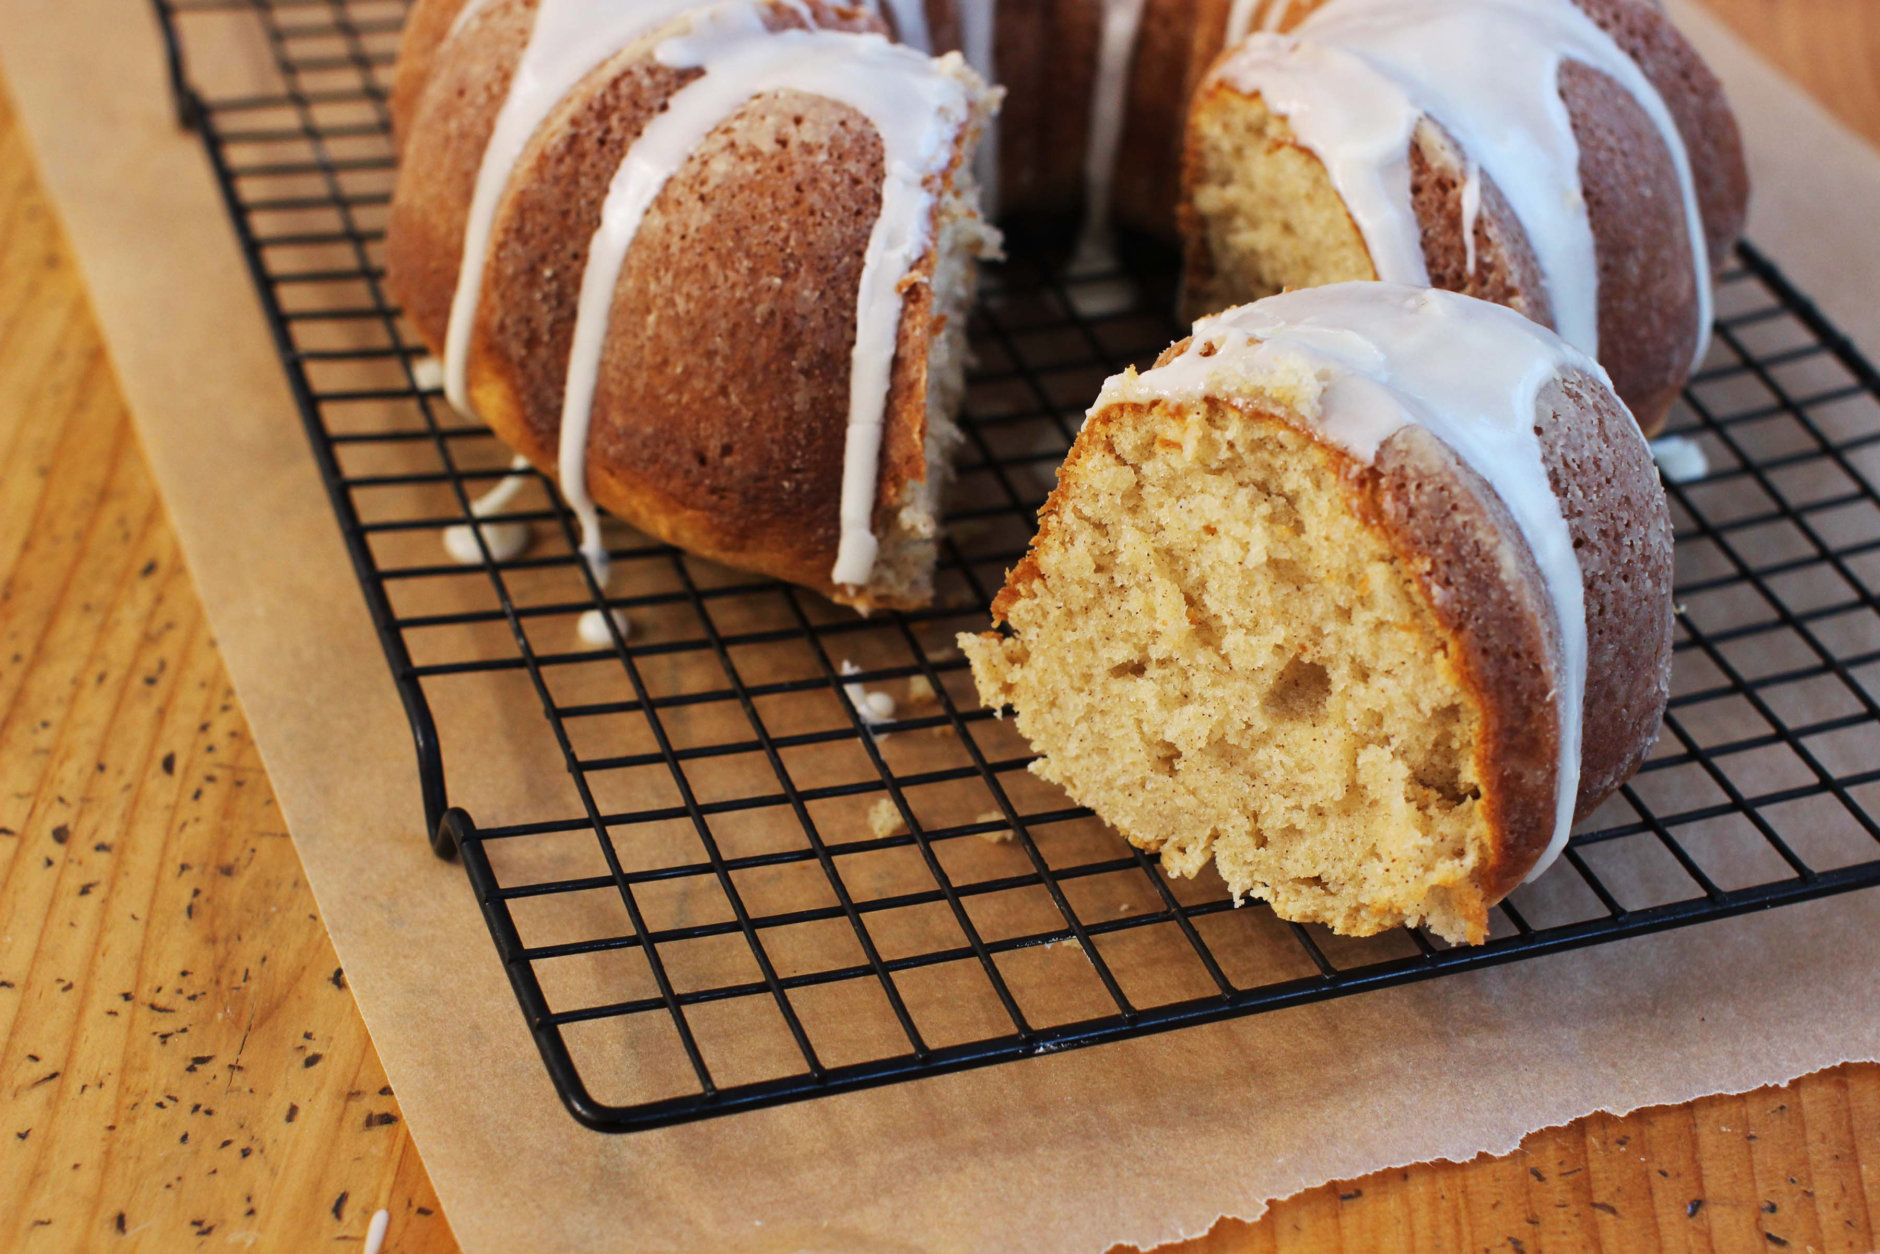 This Jan. 25, 2016 photo shows a sour cream cinnamon coffee cake in Concord, N.H. This Bundt-style cake is from a recipe by Katie Workman. (AP Photo/Matthew Mead)